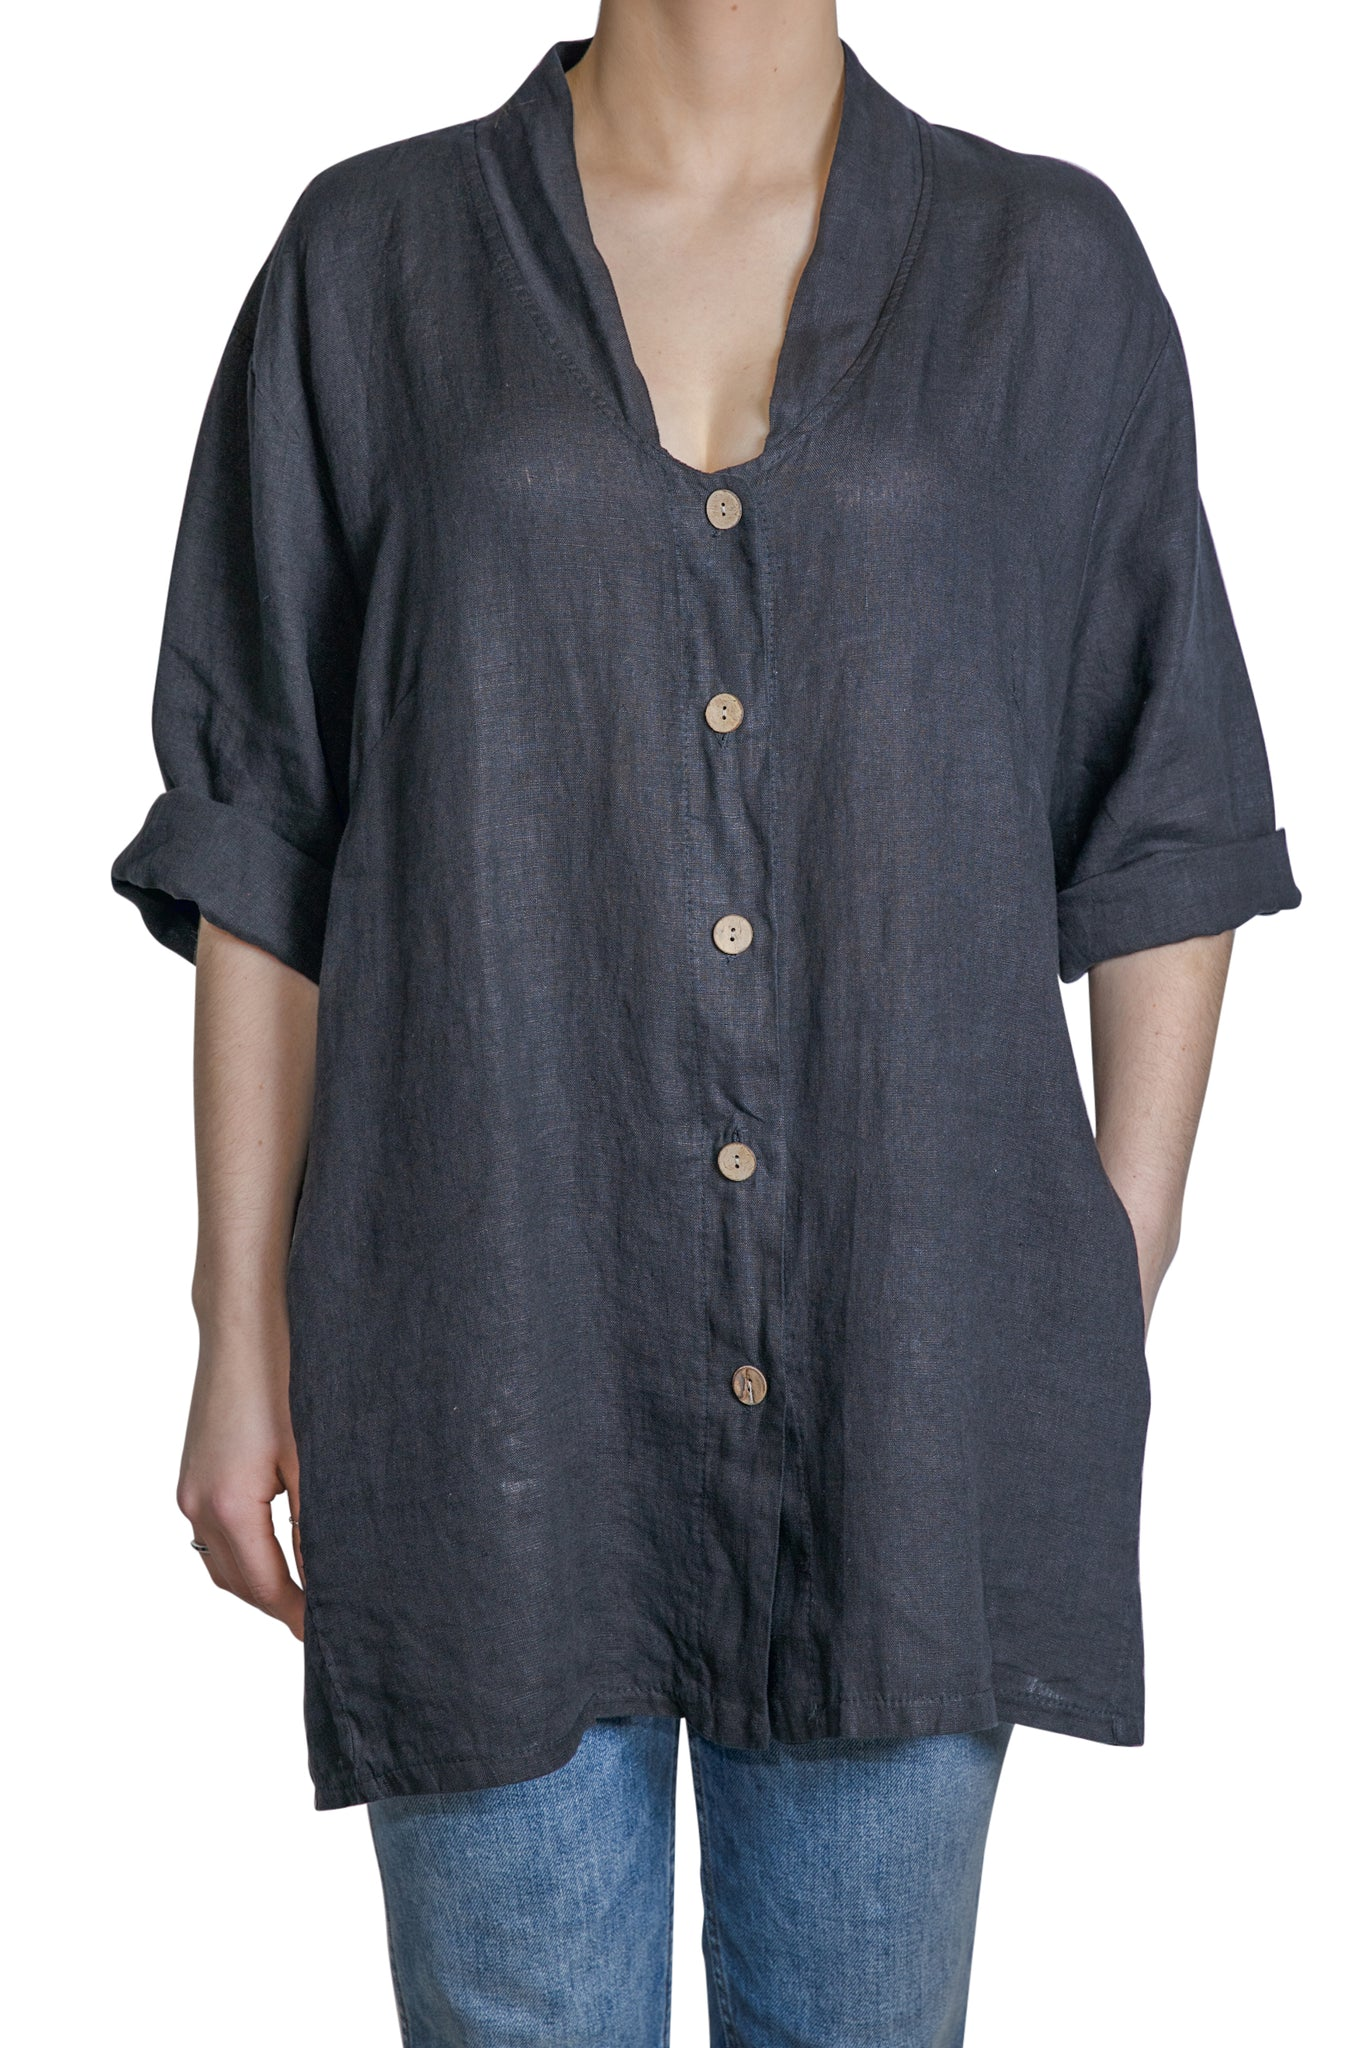 V-neck shaped tunic shirt